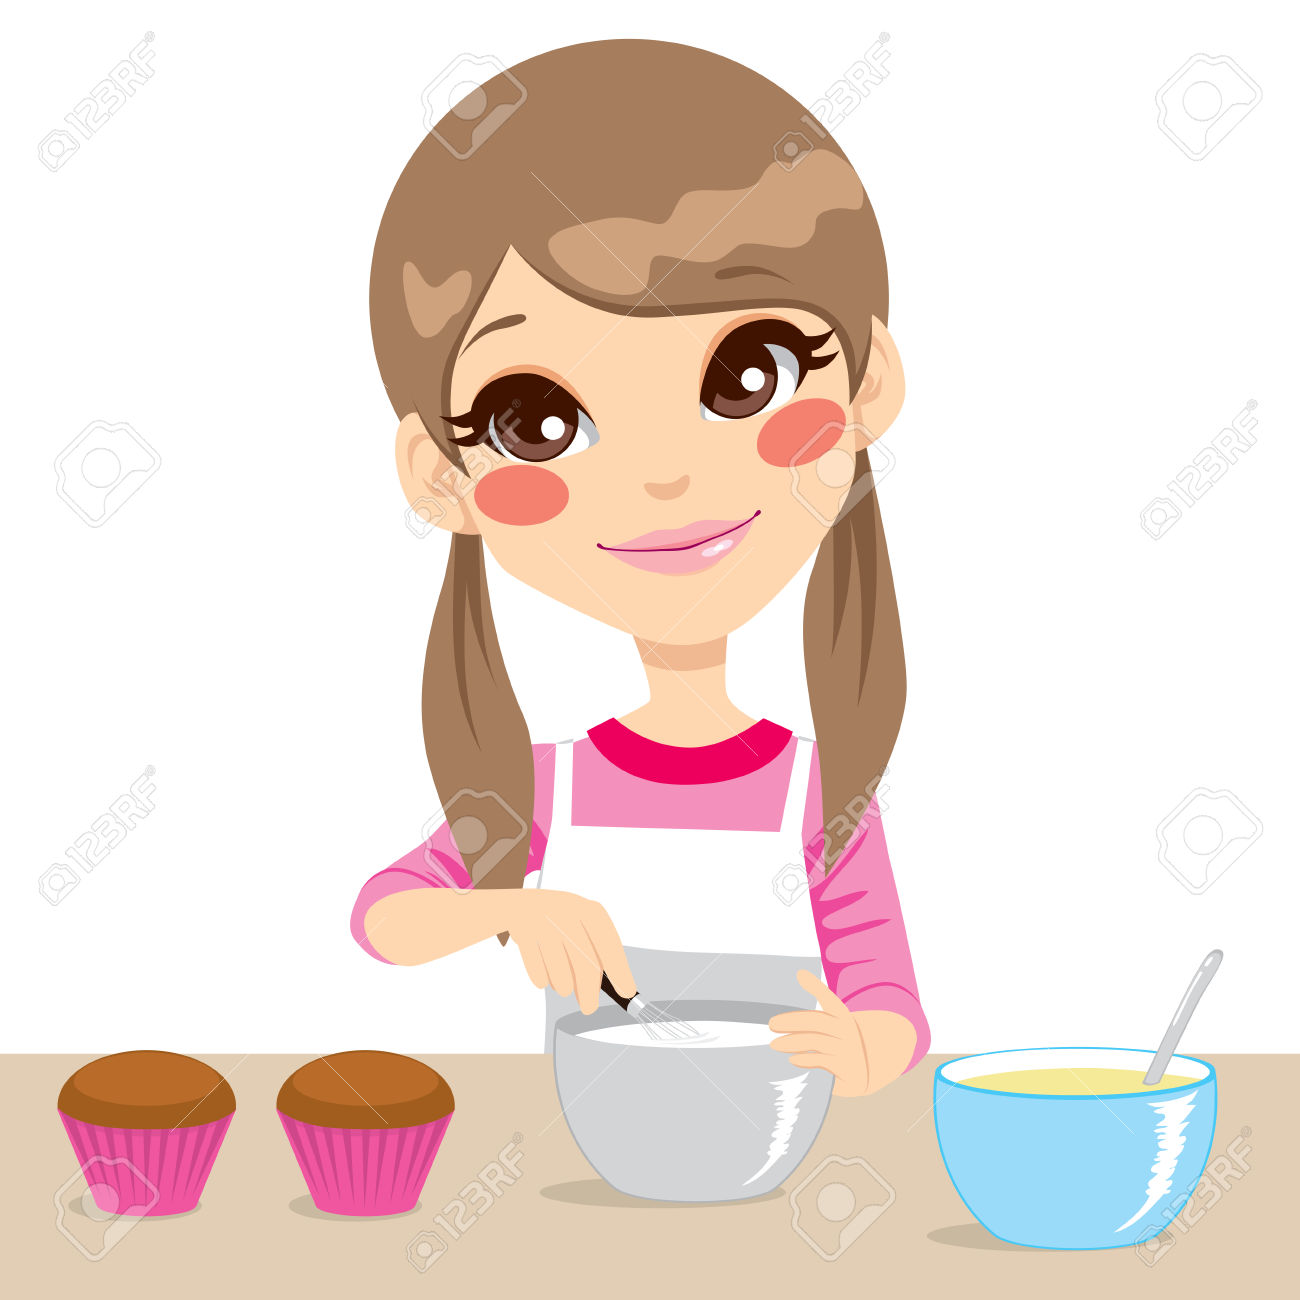 Download Free png Young Girl Making Coffee Clipart & Clip.